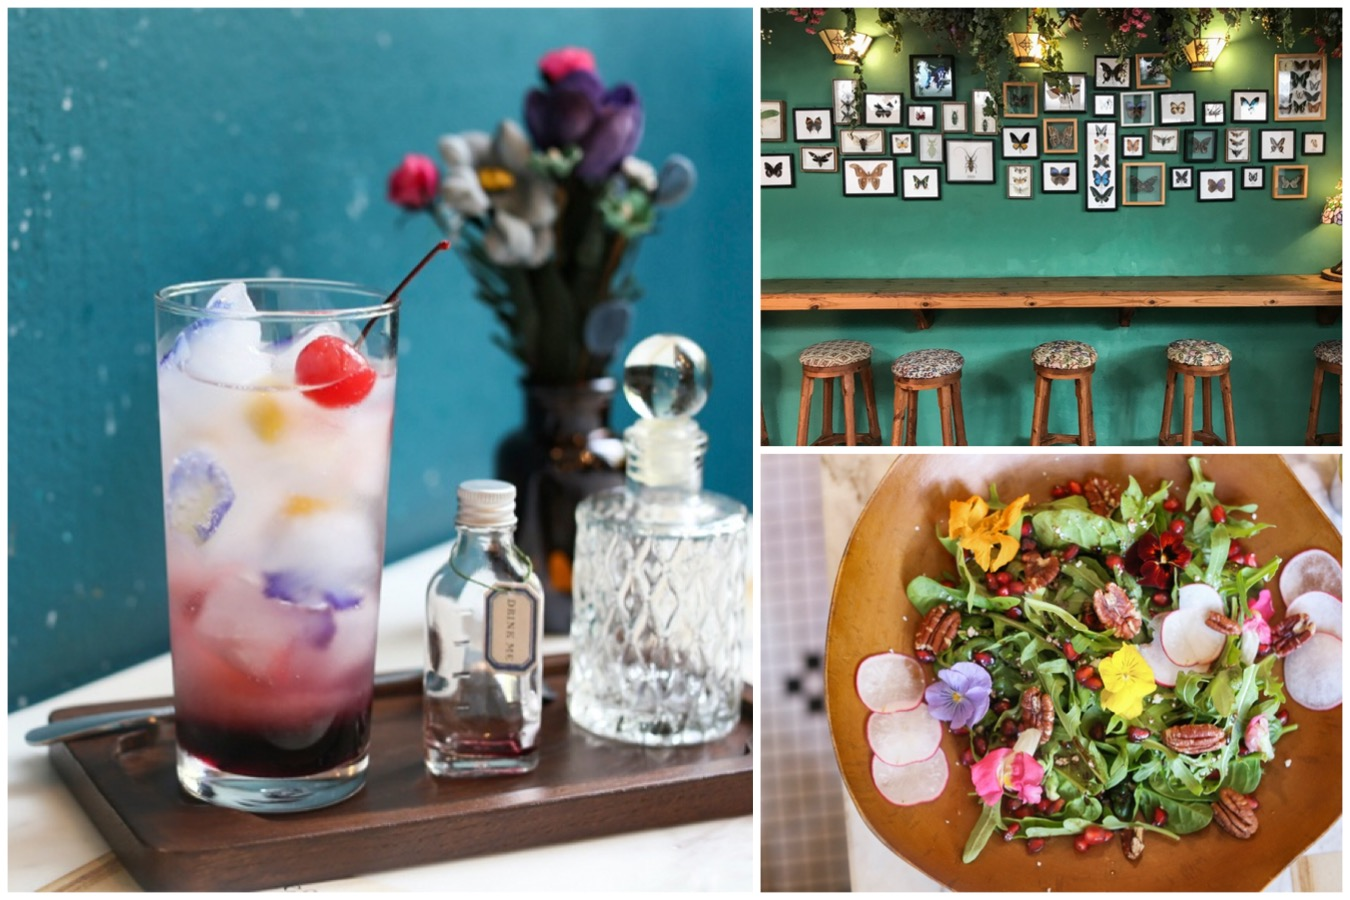 Featherstone Bistro Café & Lifestyle Shop - Mystical Themed Cafe In Bangkok Is Instagram Heaven